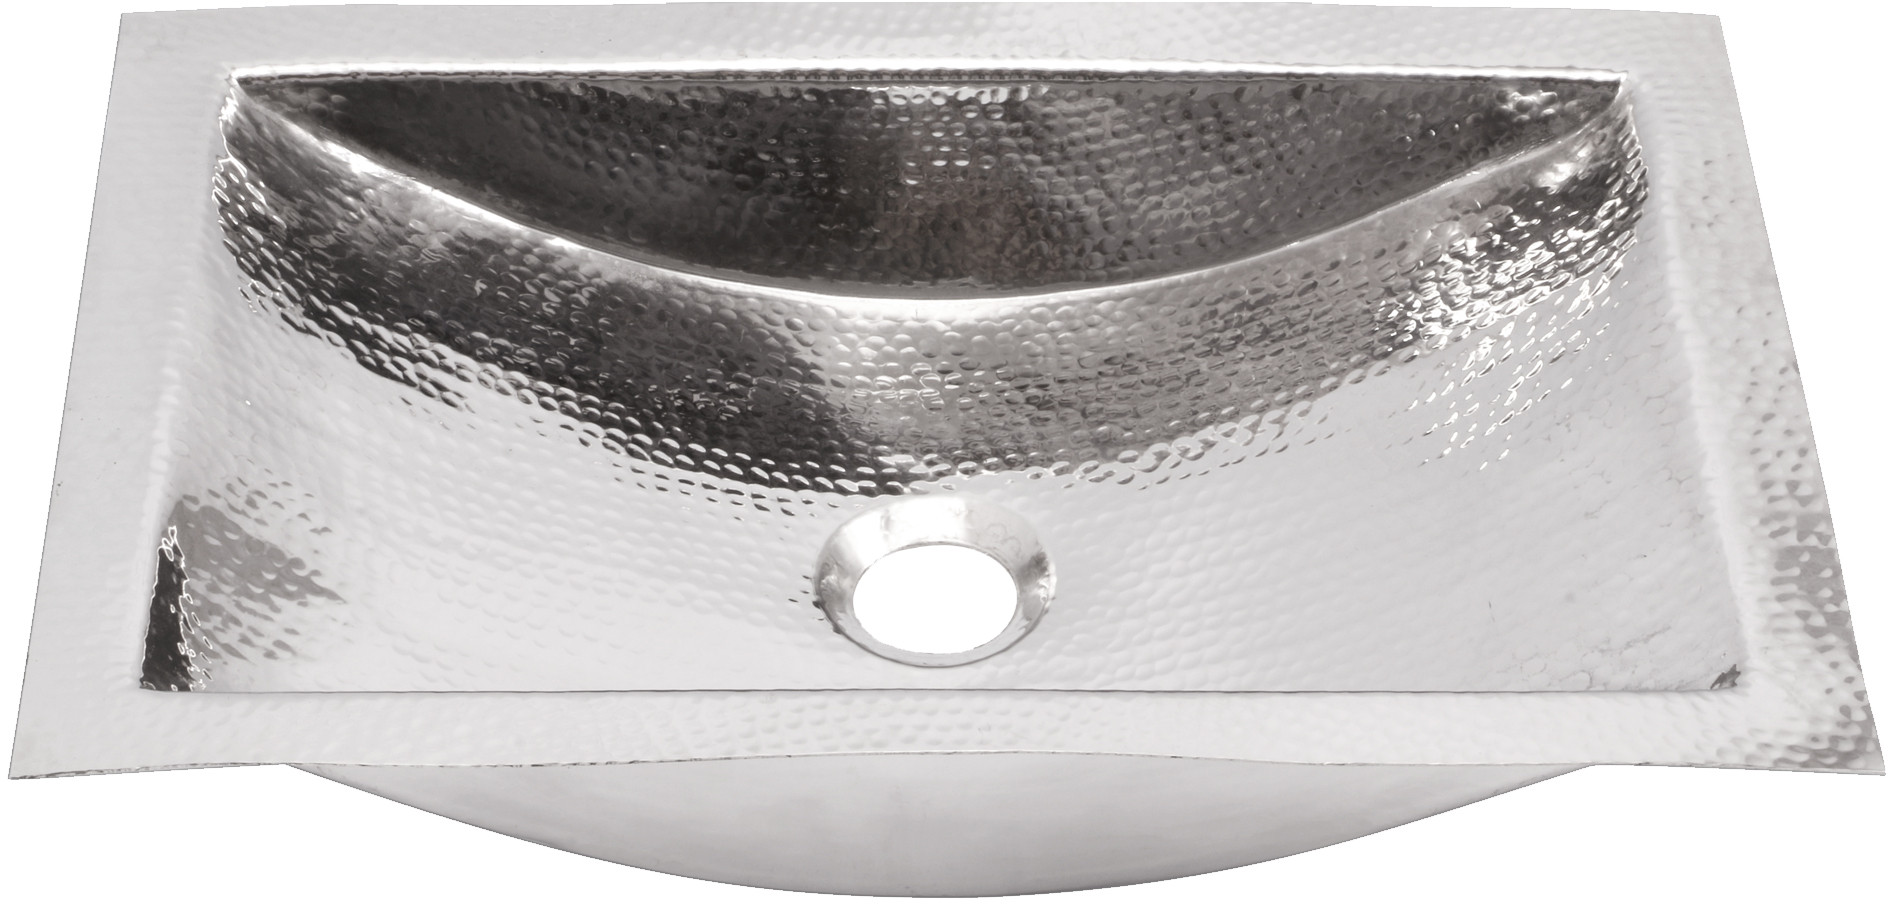 Nantucket Sinks Trs 20 Inch Hand Hammered Rectangle Undermount Bathroom Sink With 18 Gauge Stainless Steel Polished Finish And Hand Hammered